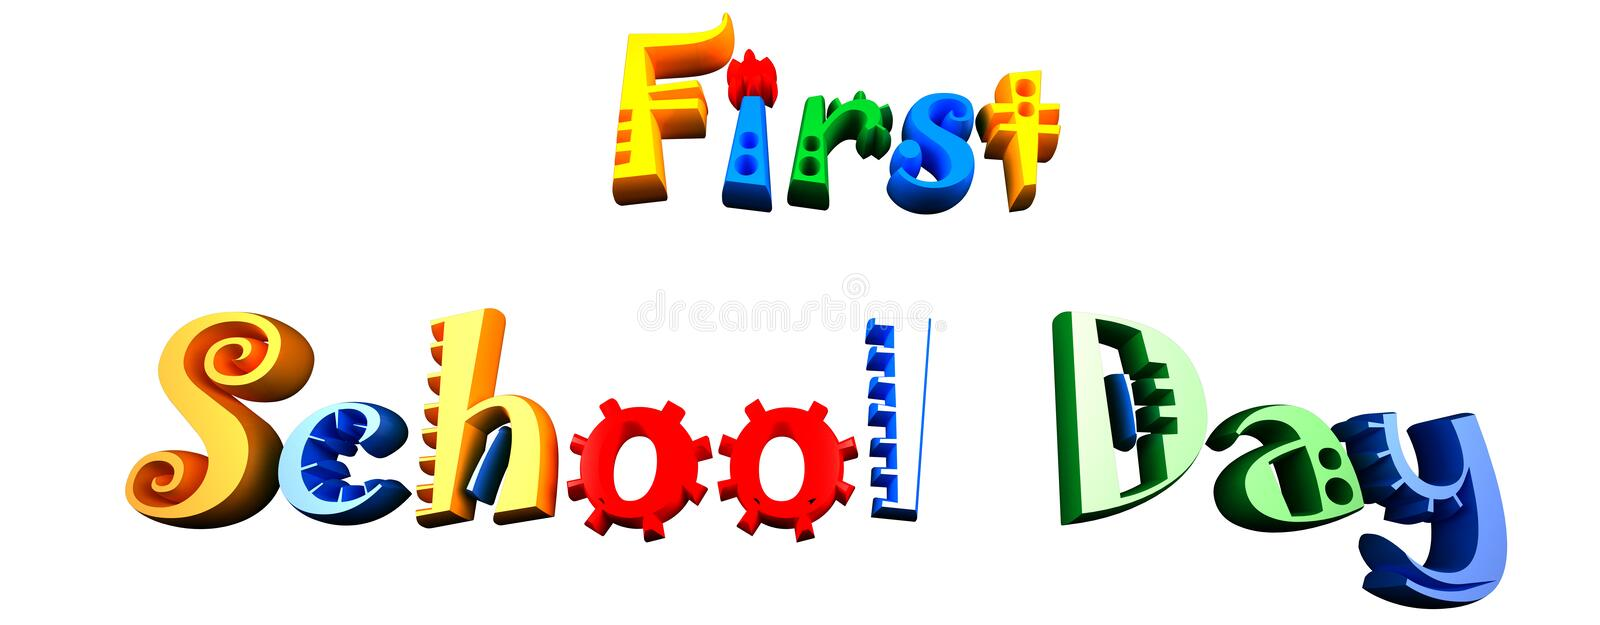 Firs School Day Stock Image